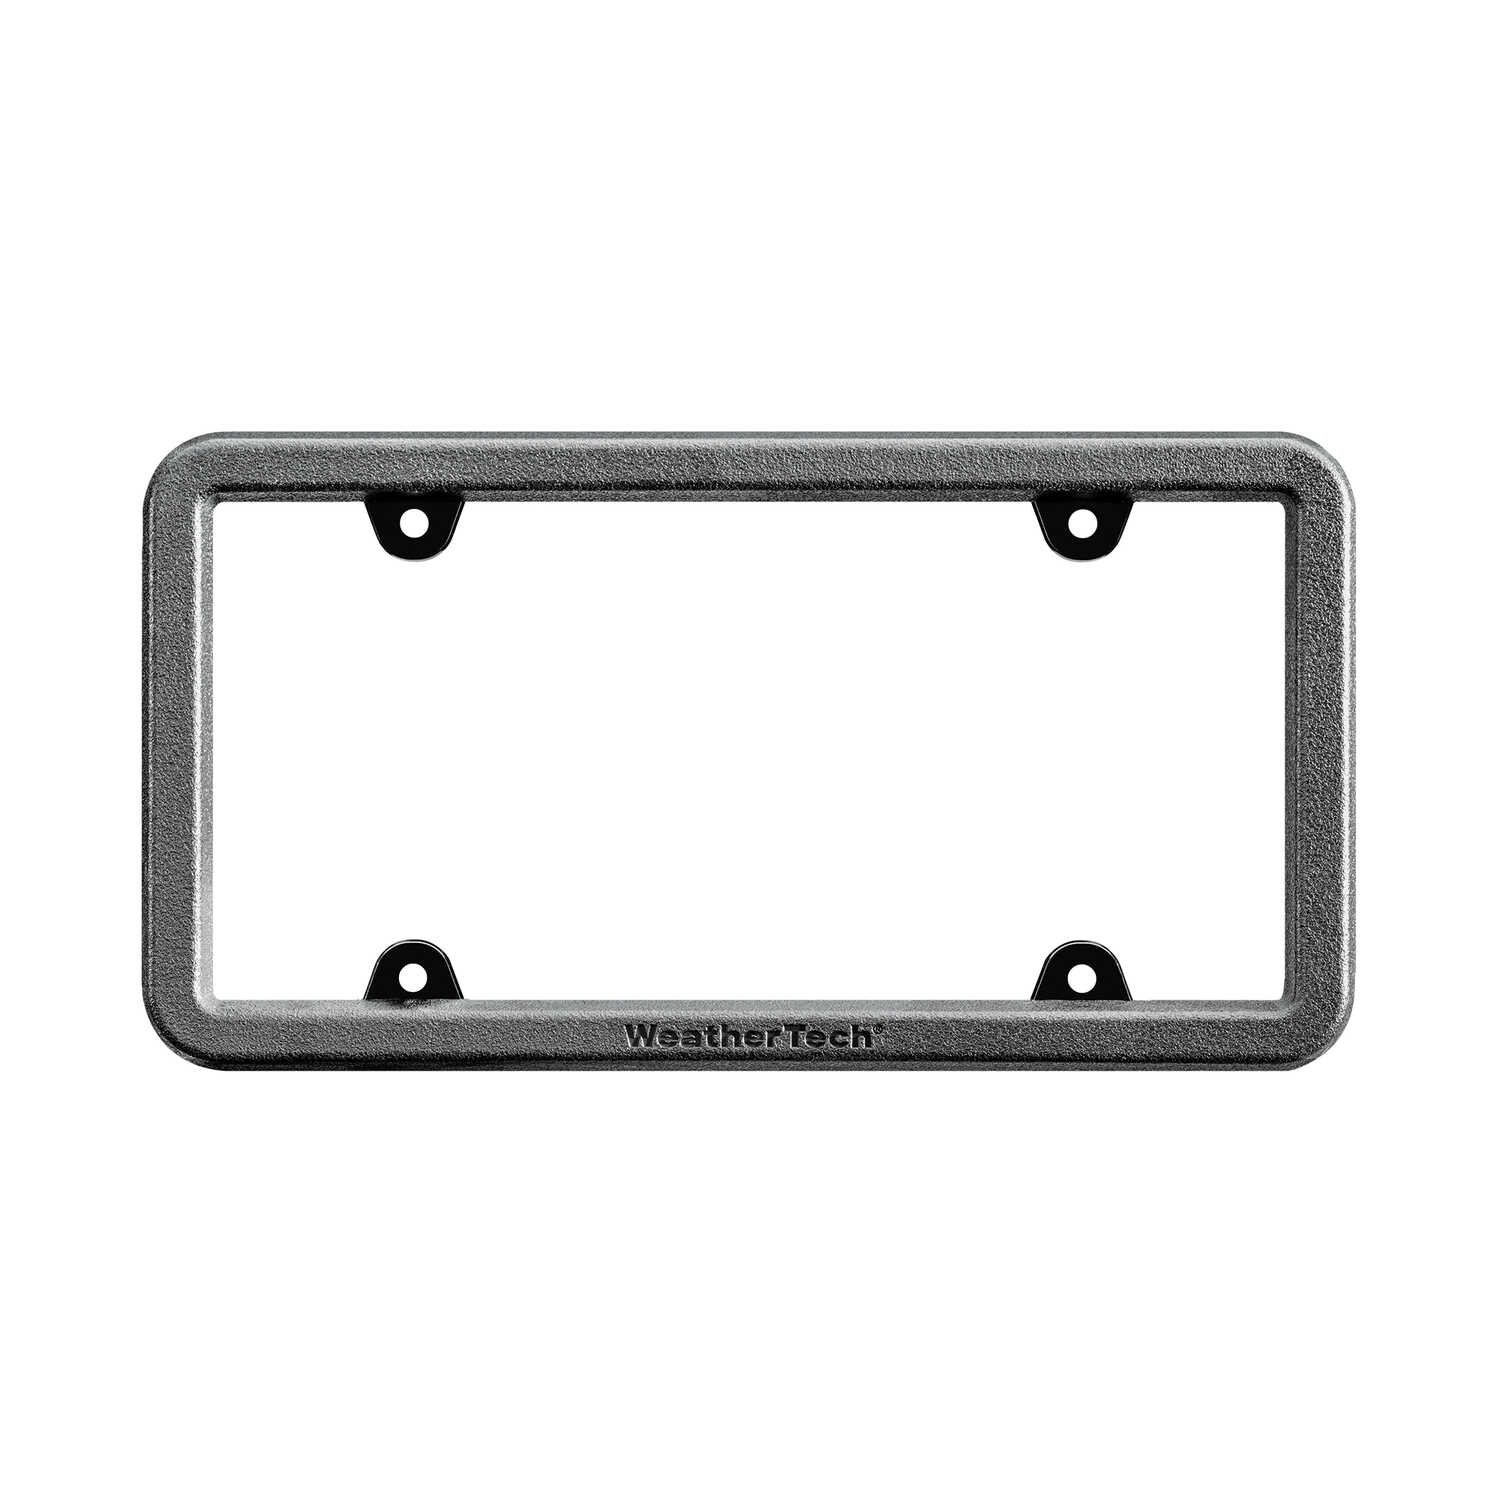 WeatherTech  Black  Polycarbonate  License Plate Bumper Frame